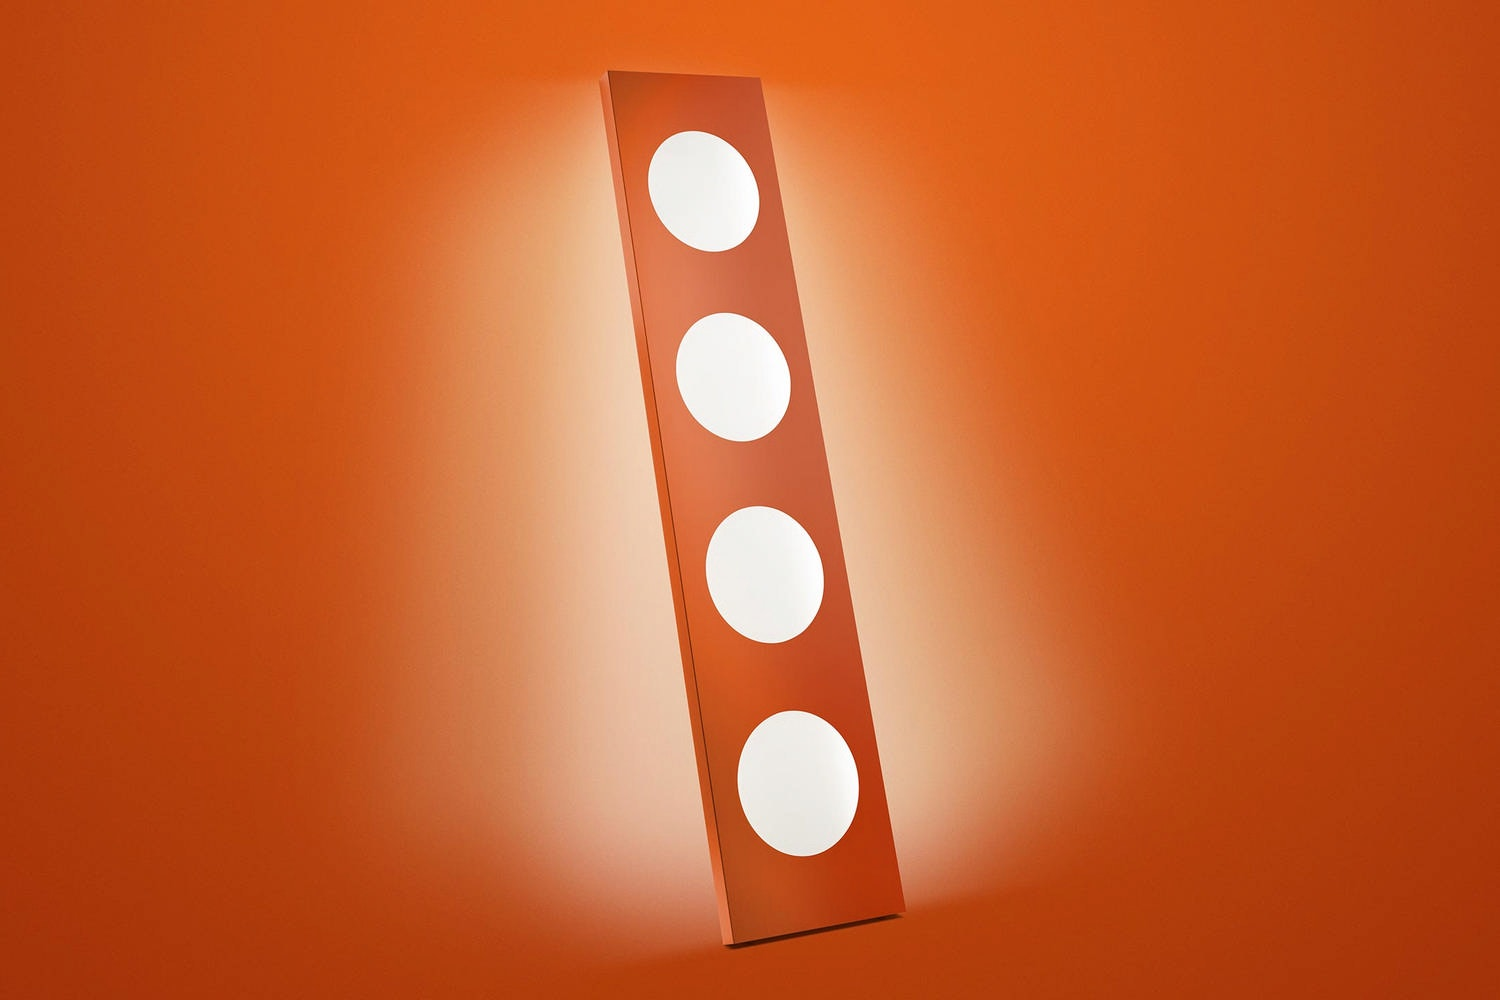 Dolmen LED Dimmer Floor Lamp by Ferruccio Laviani for Foscarini